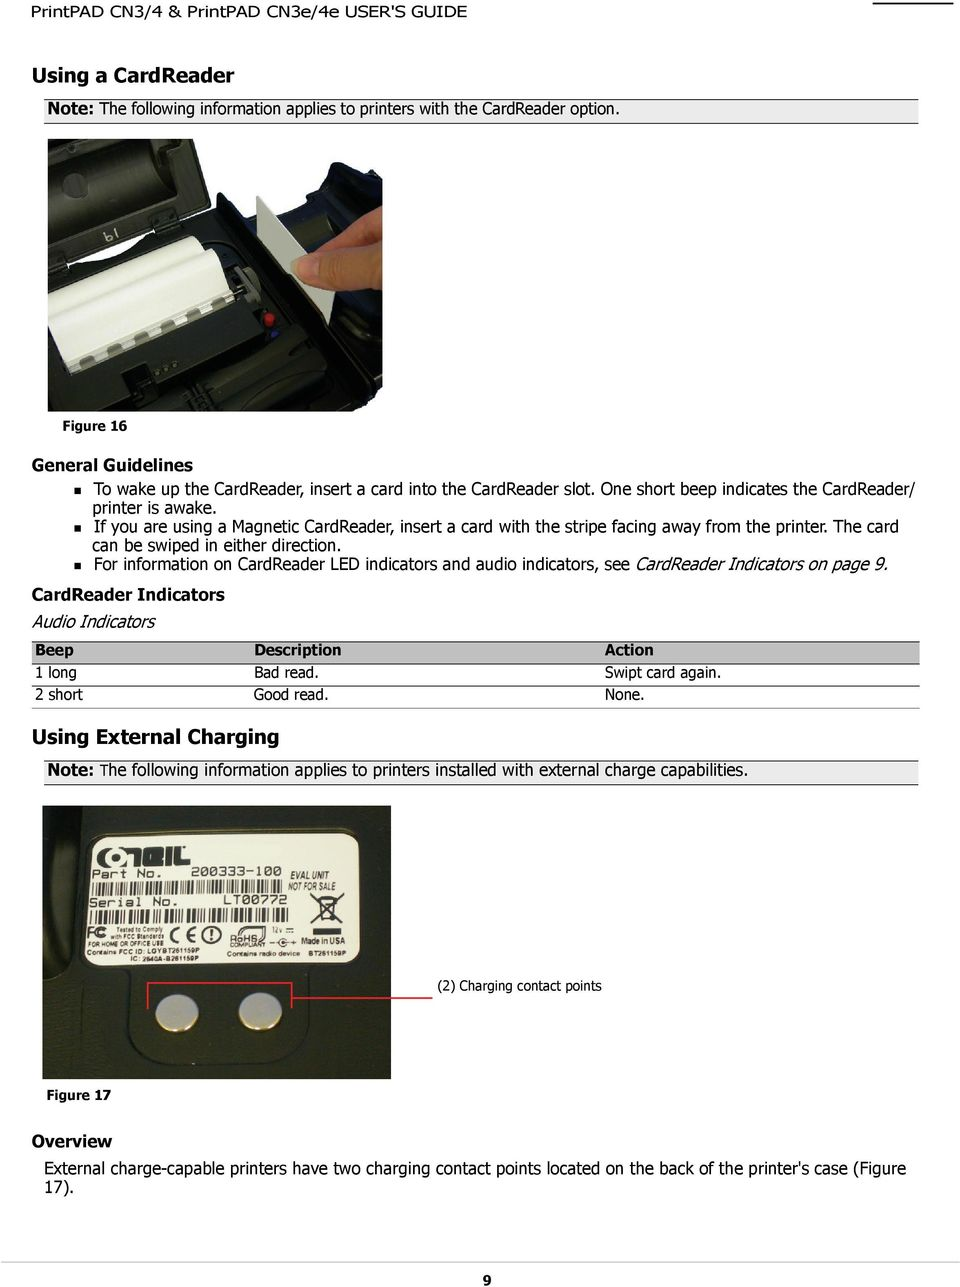 The card can be swiped in either direction. For information on CardReader LED indicators and audio indicators, see CardReader Indicators on page 9.